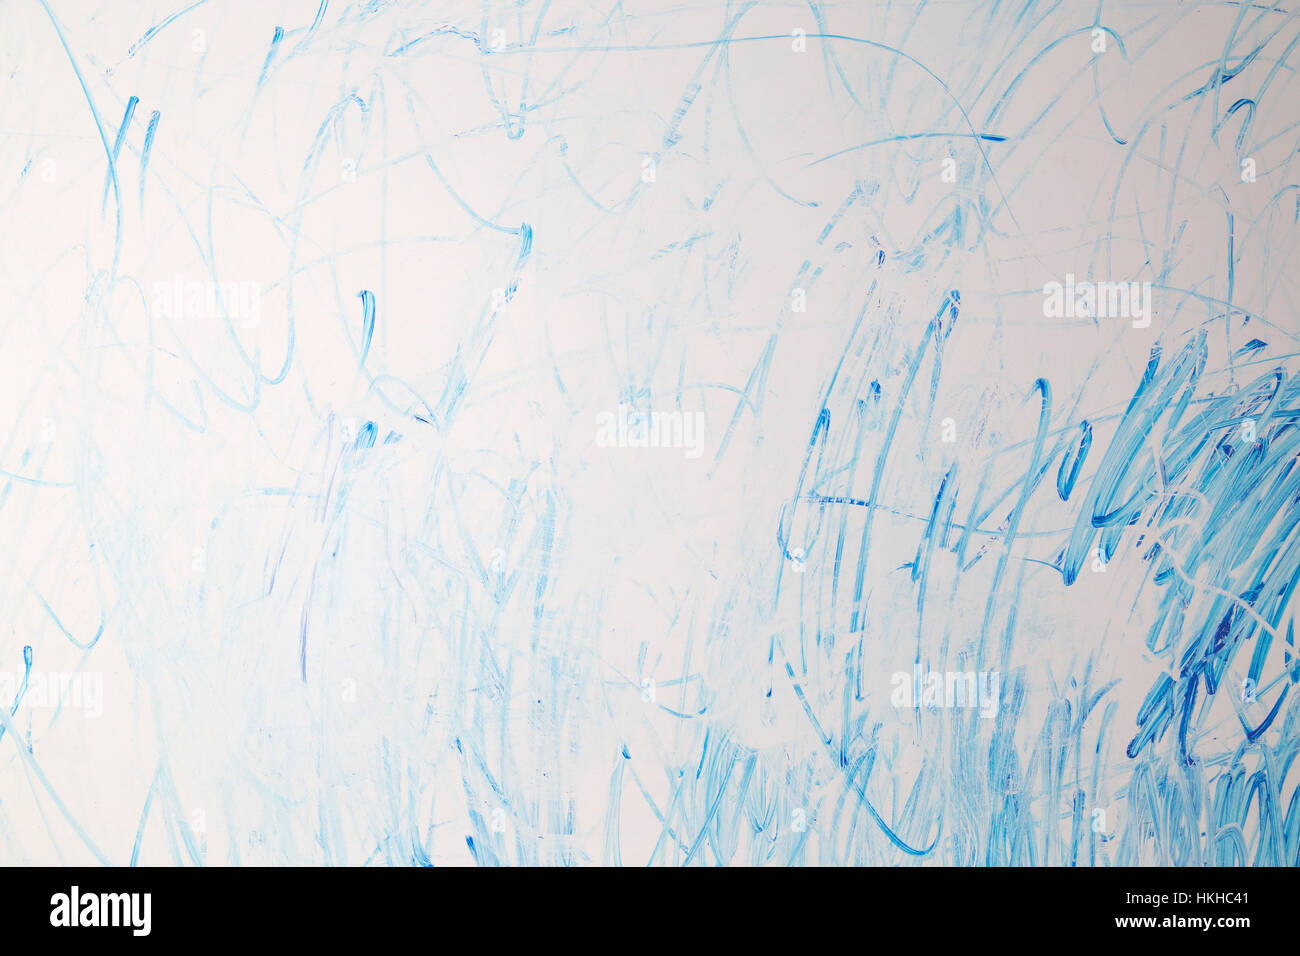 dirty whiteboard background stock photo 132533745 alamy